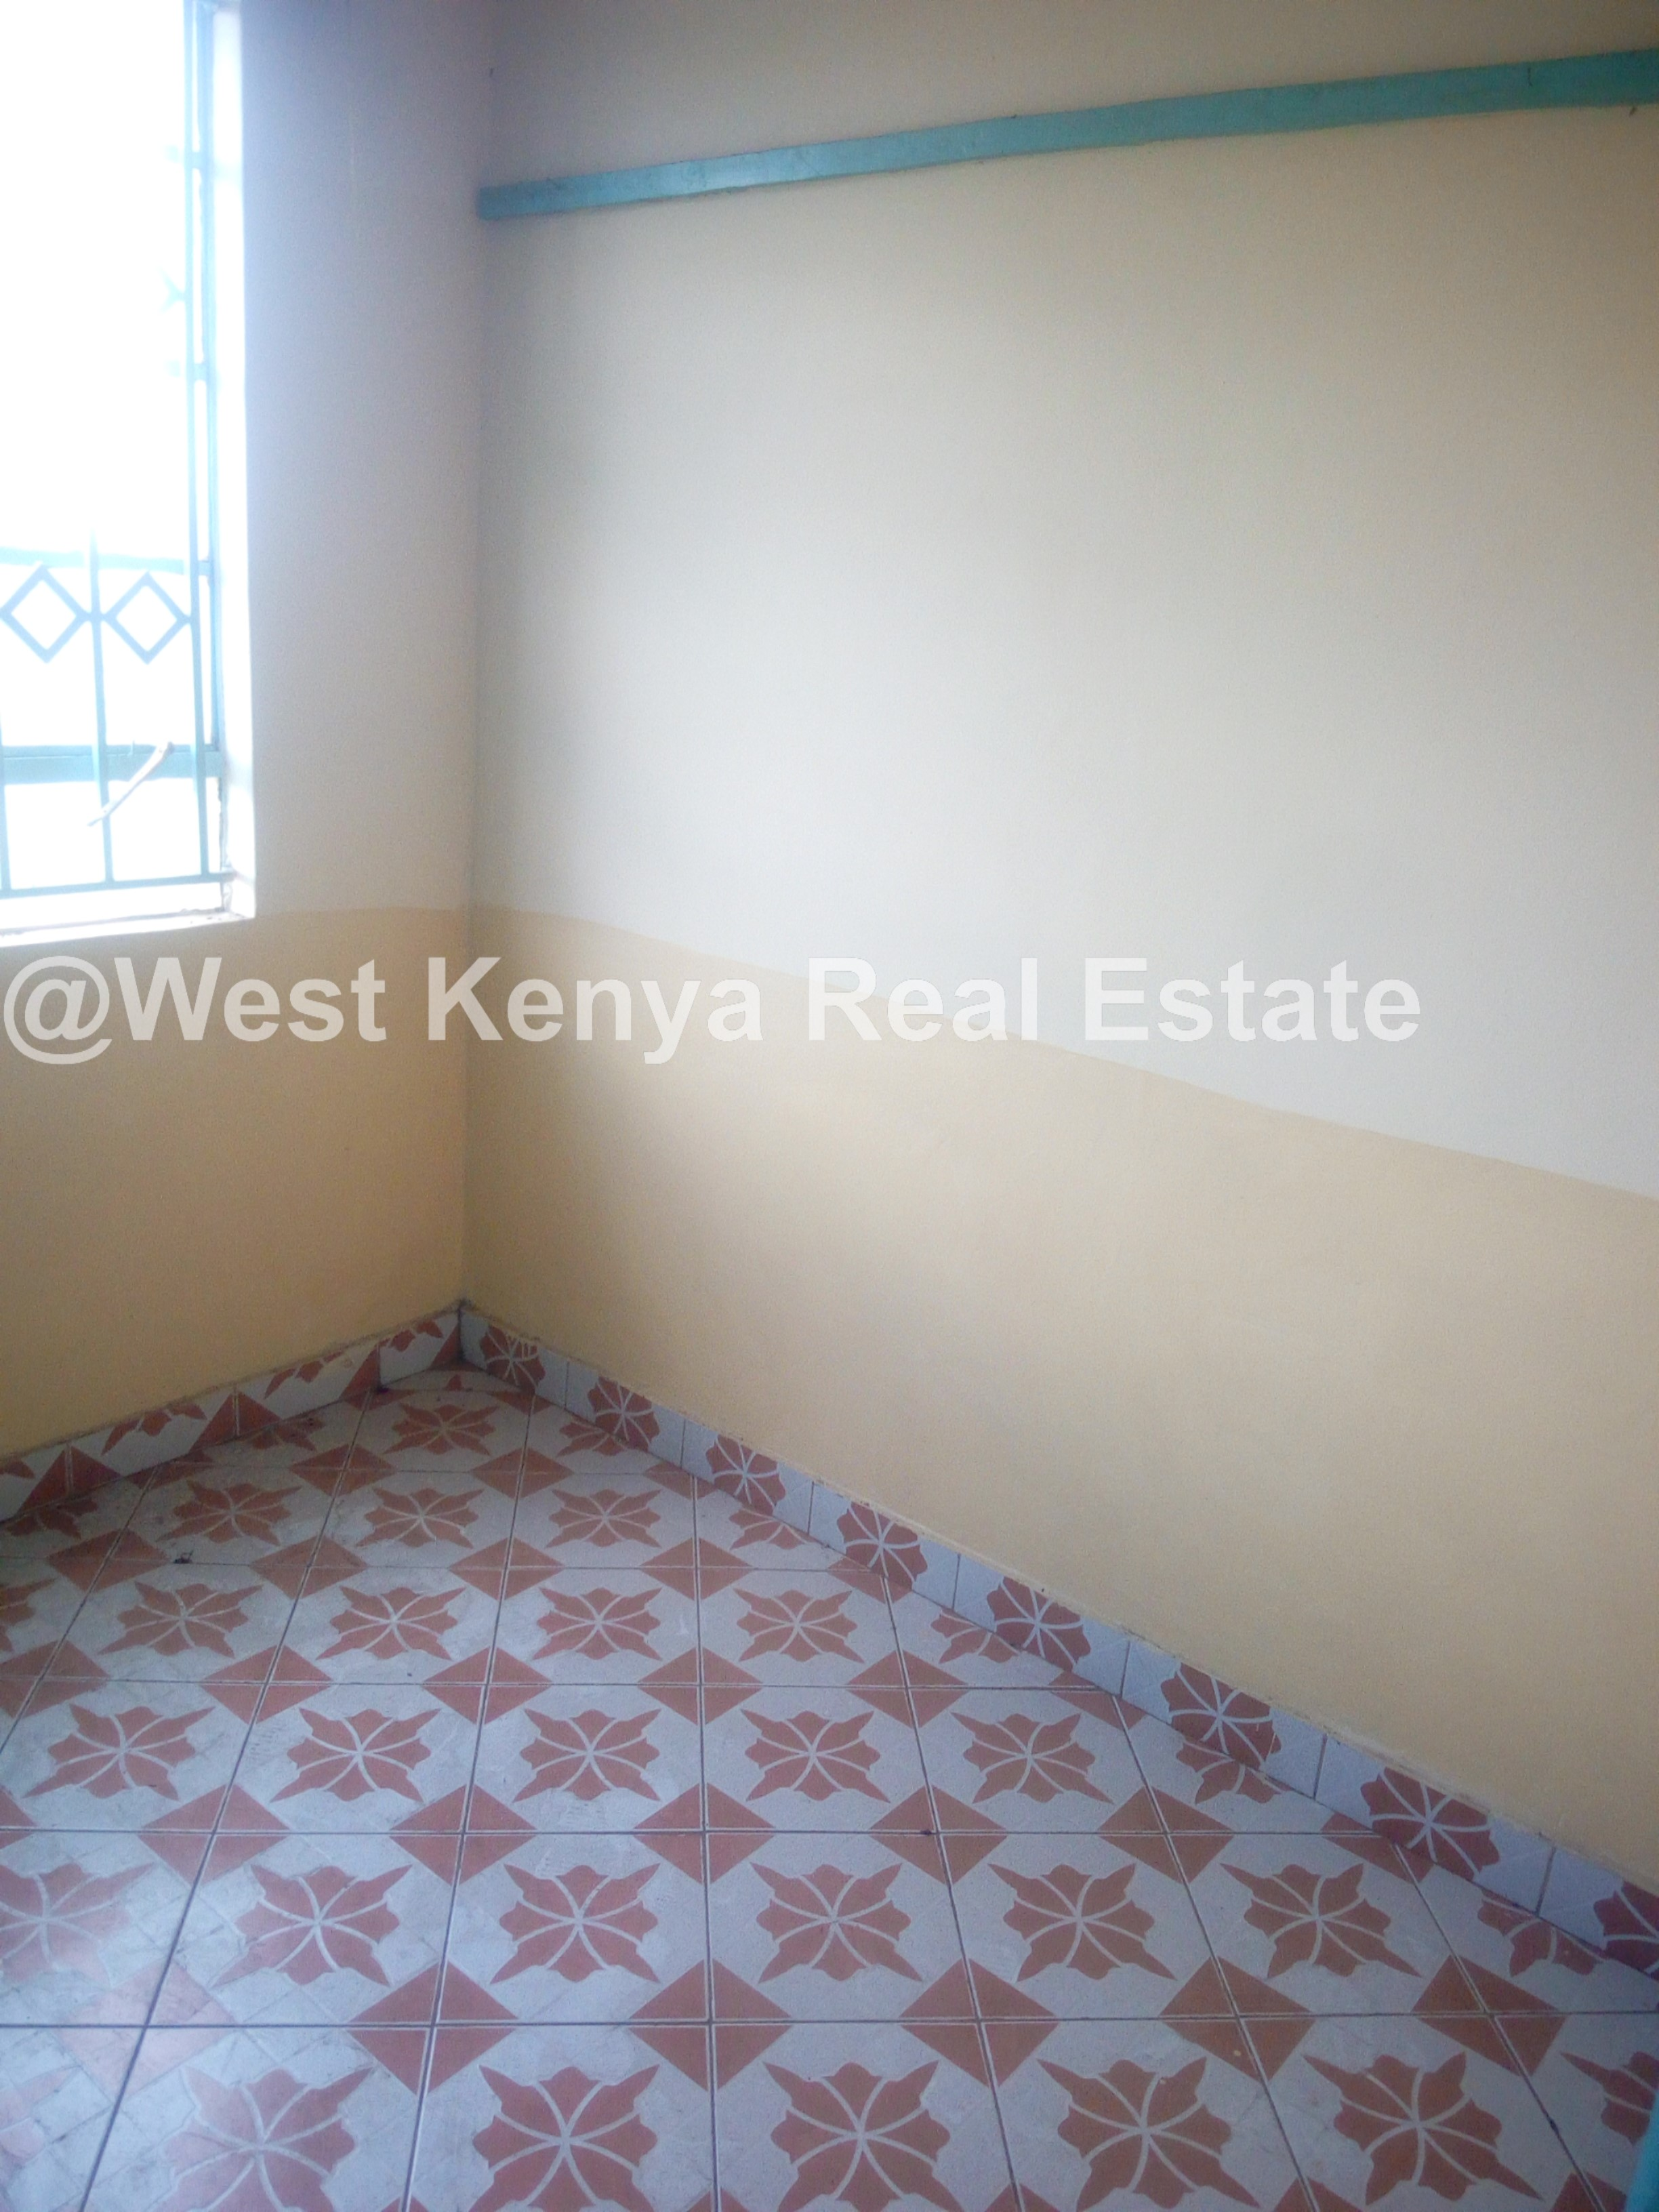 3 Bedroom house Obuolo Mamboleo Kisumu 6